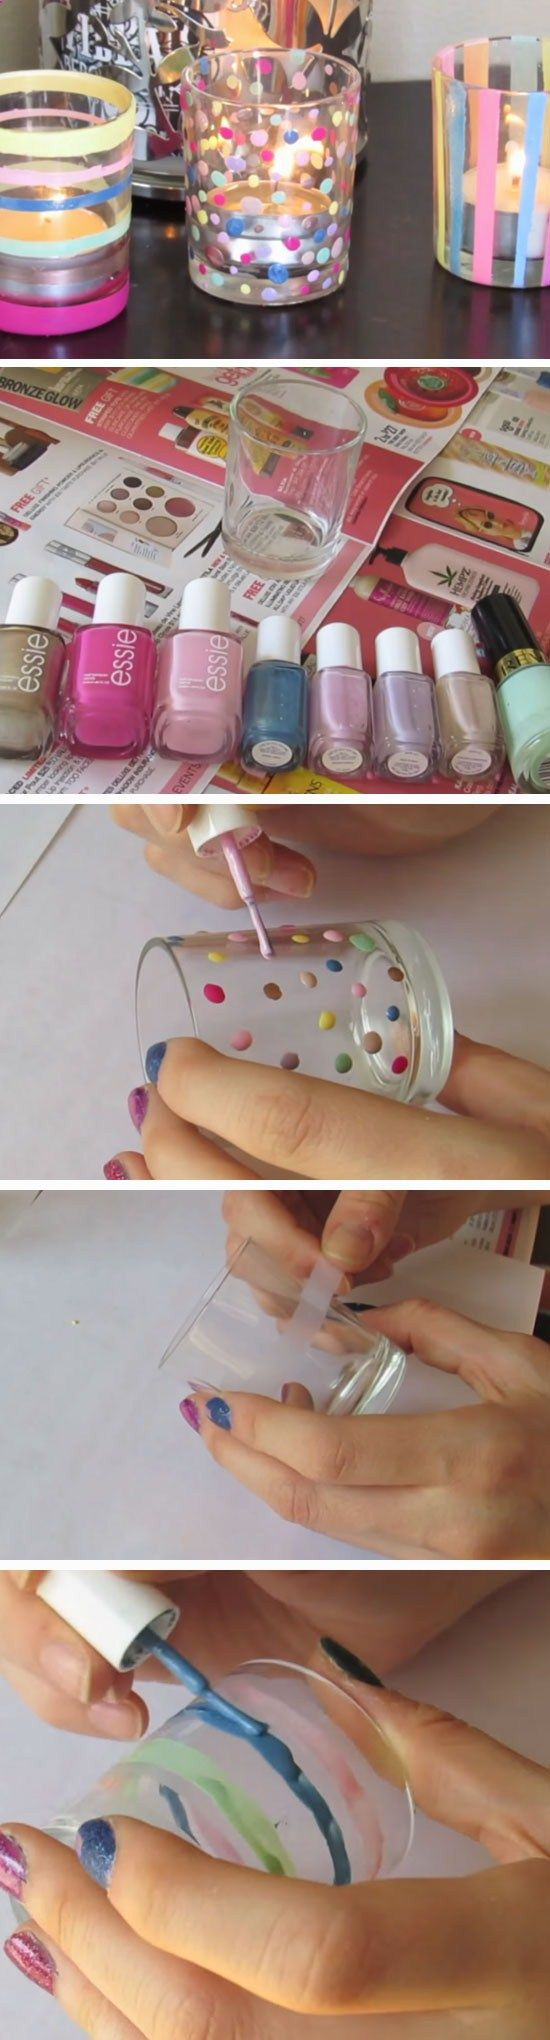 Pastel Votives | DIY Easter Party Favor Ideas for Teens | Handmade Spring Gift Ideas for Kids